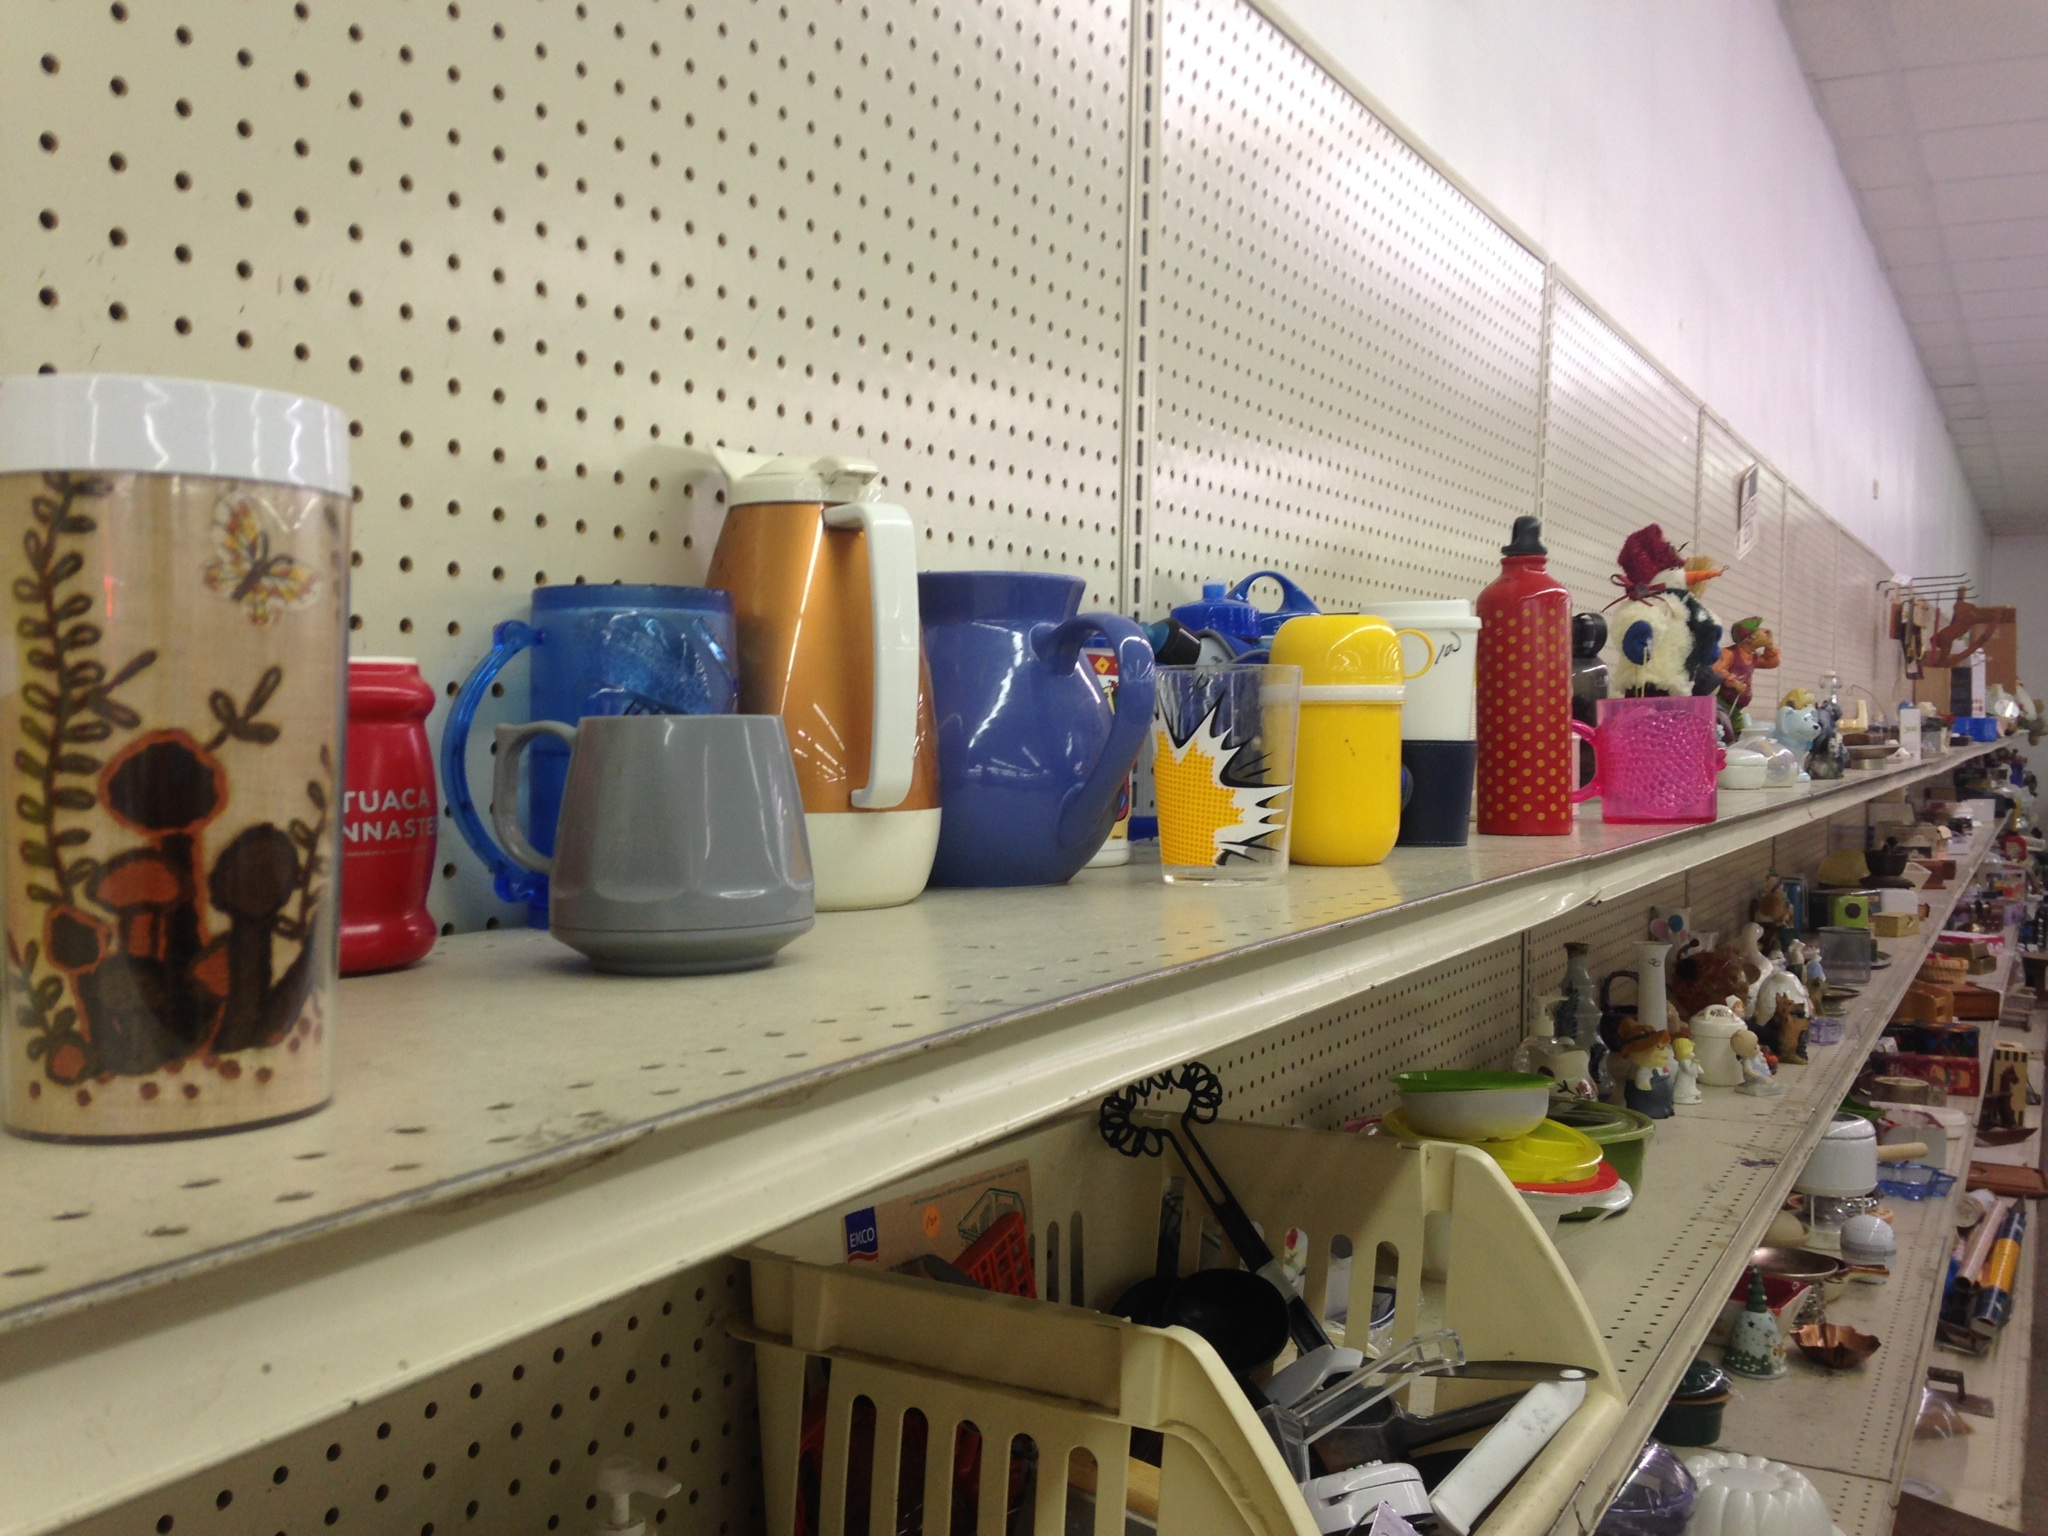 Plastic Thermoses And Kettles Sit Next To Porcelain Knickknacks In Value  Villageu0027s Oddball Assortment Of Housewares